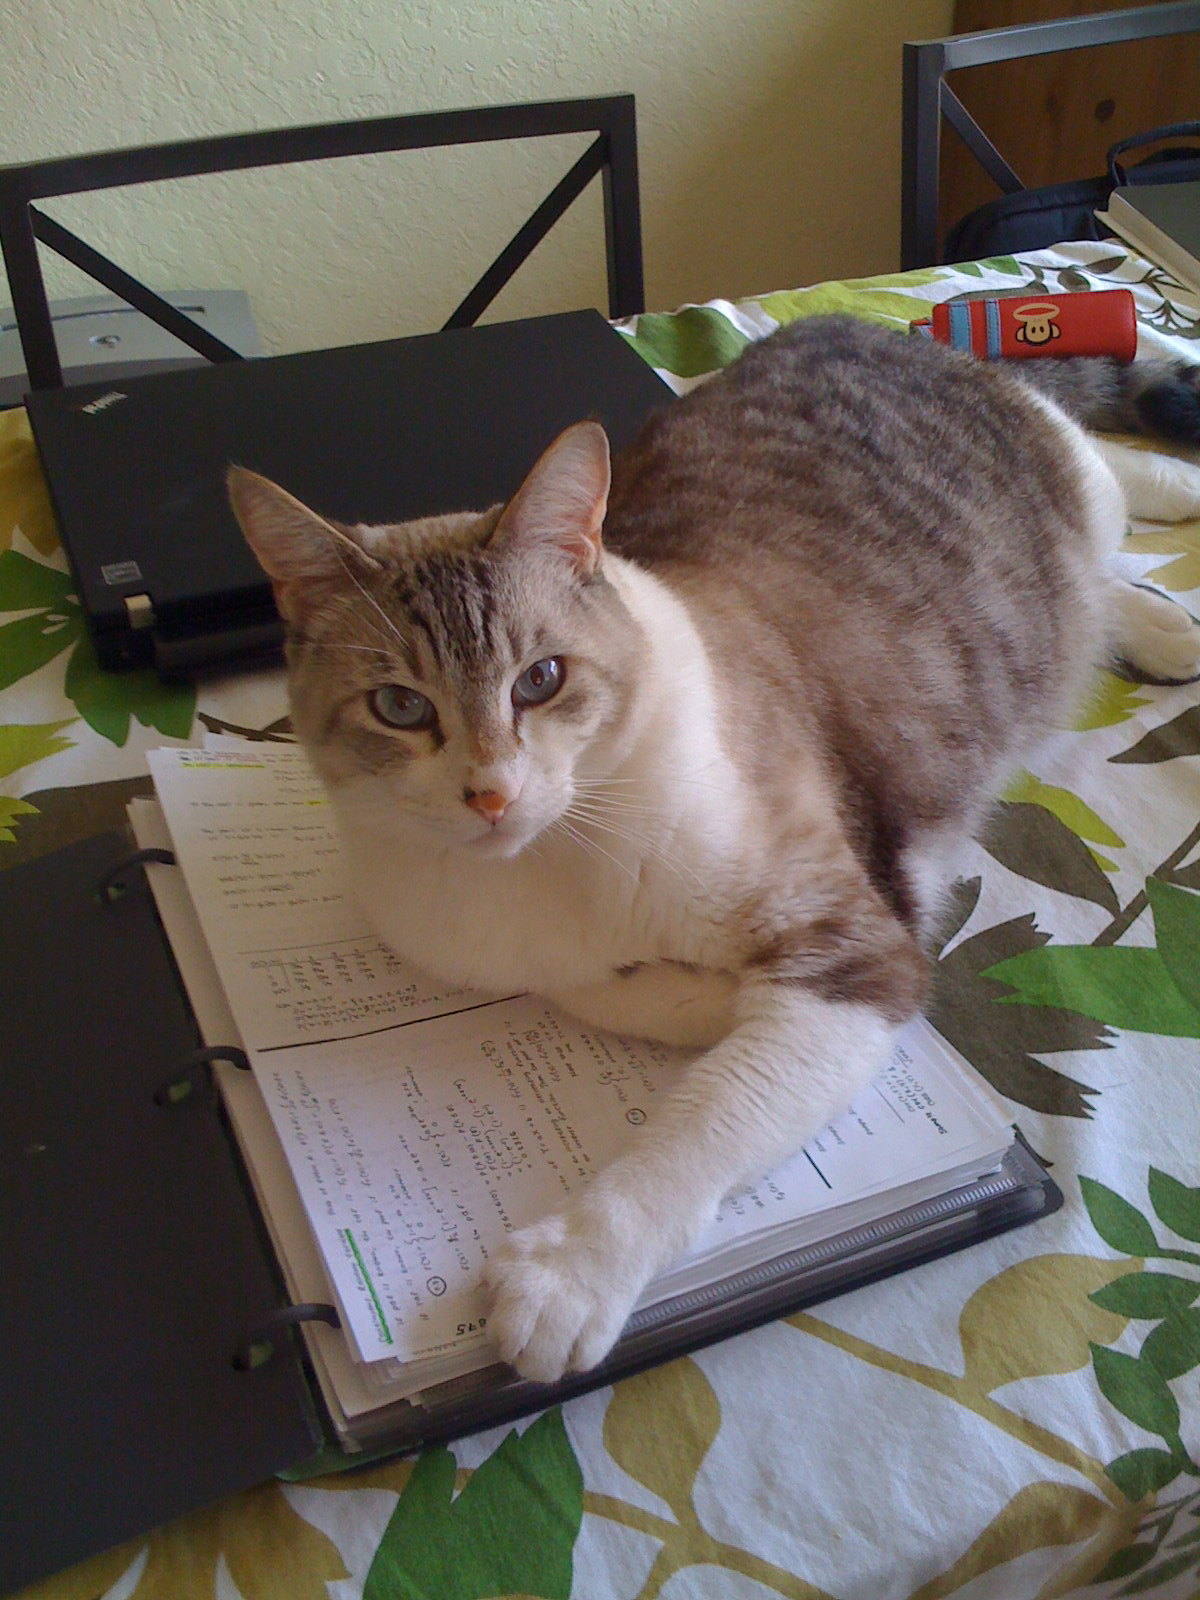 A grey and white tabby cat laying down on top of a binder of handwritten notes sitting on a table.